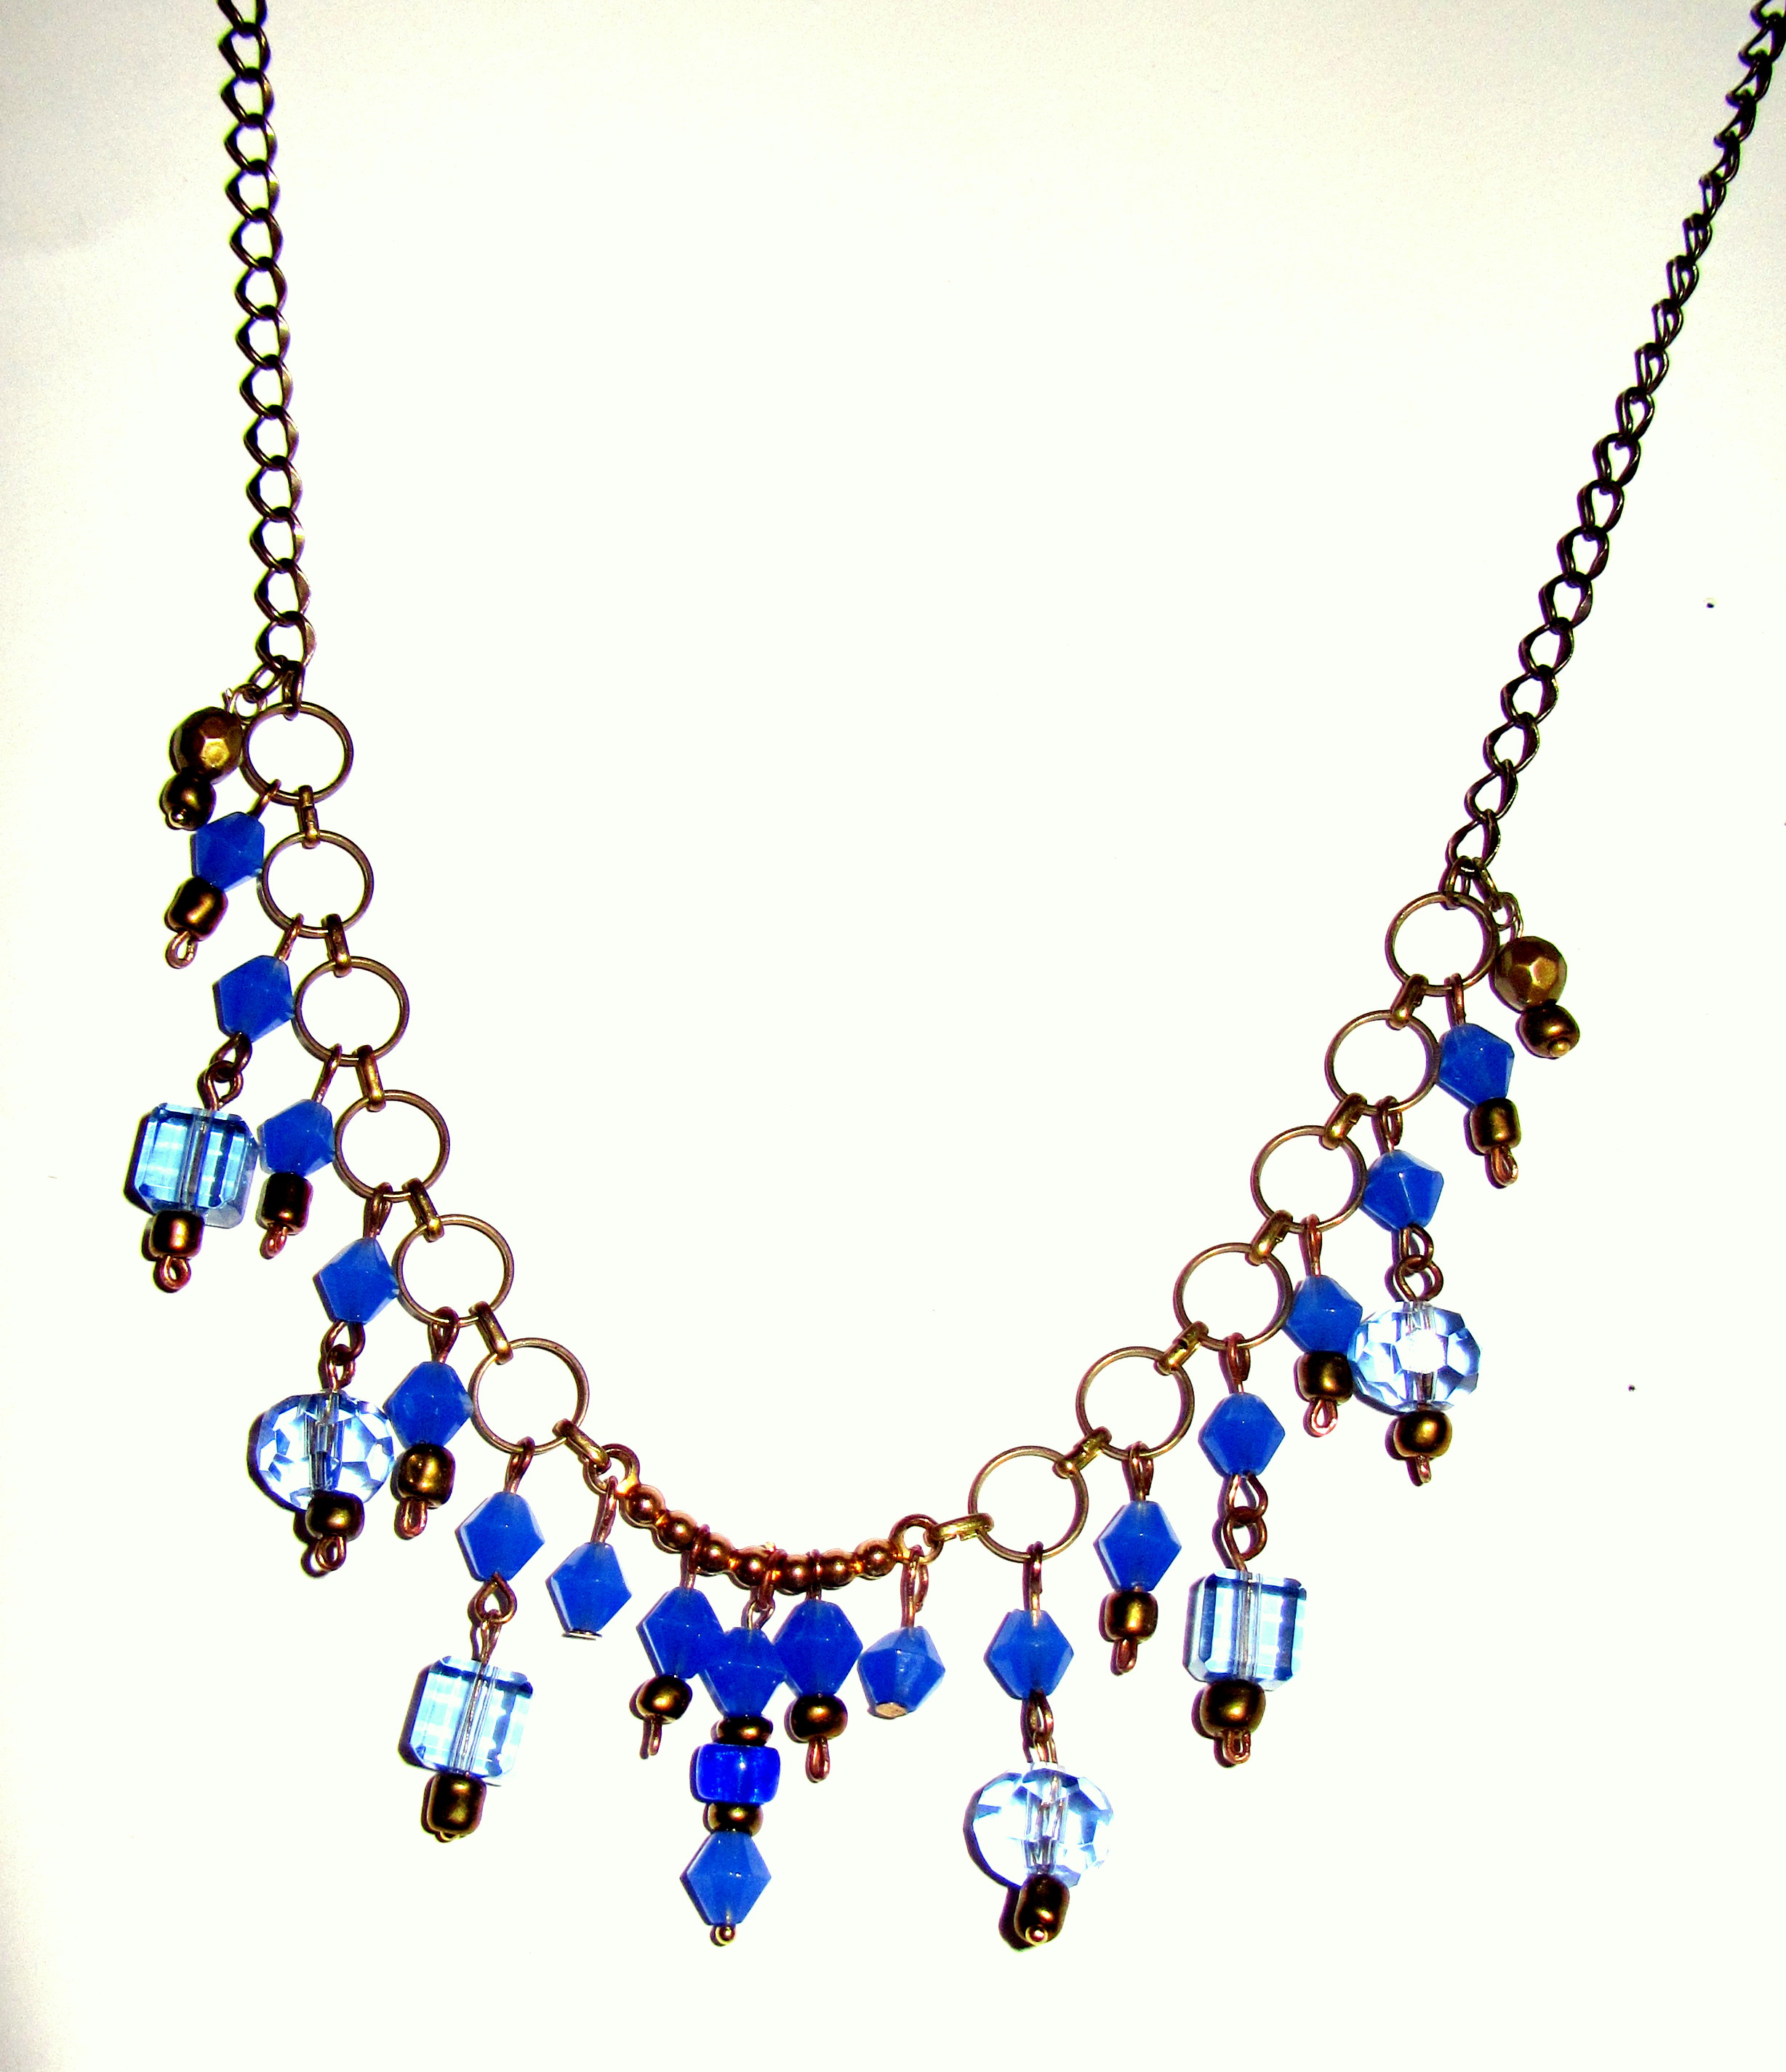 Necklace of colored glass